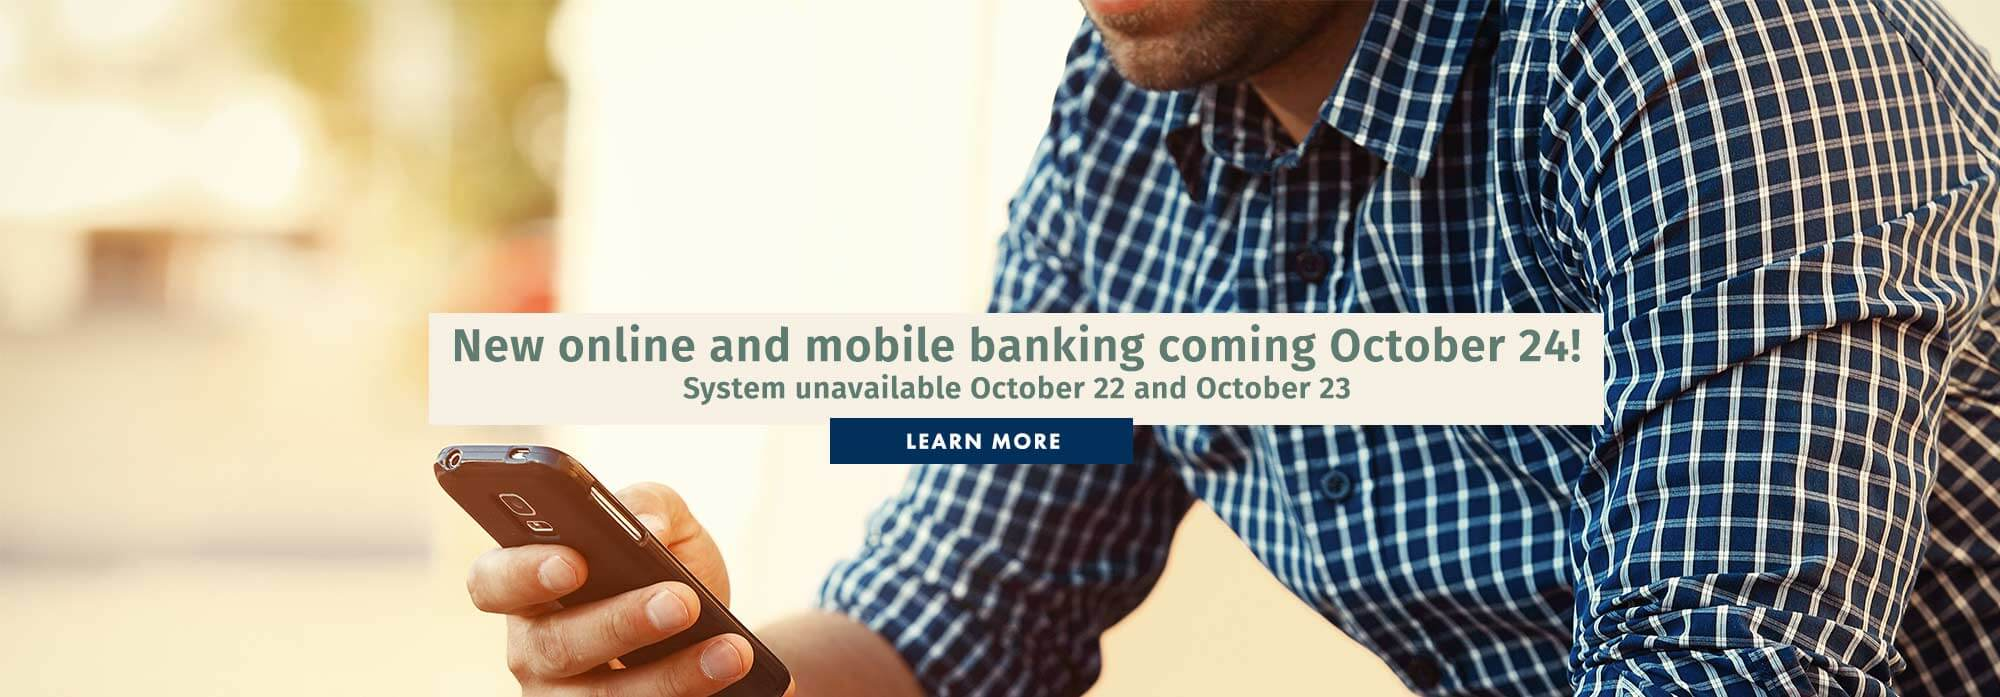 New online and mobile banking coming October 24! System unavailable October 22 and October 23